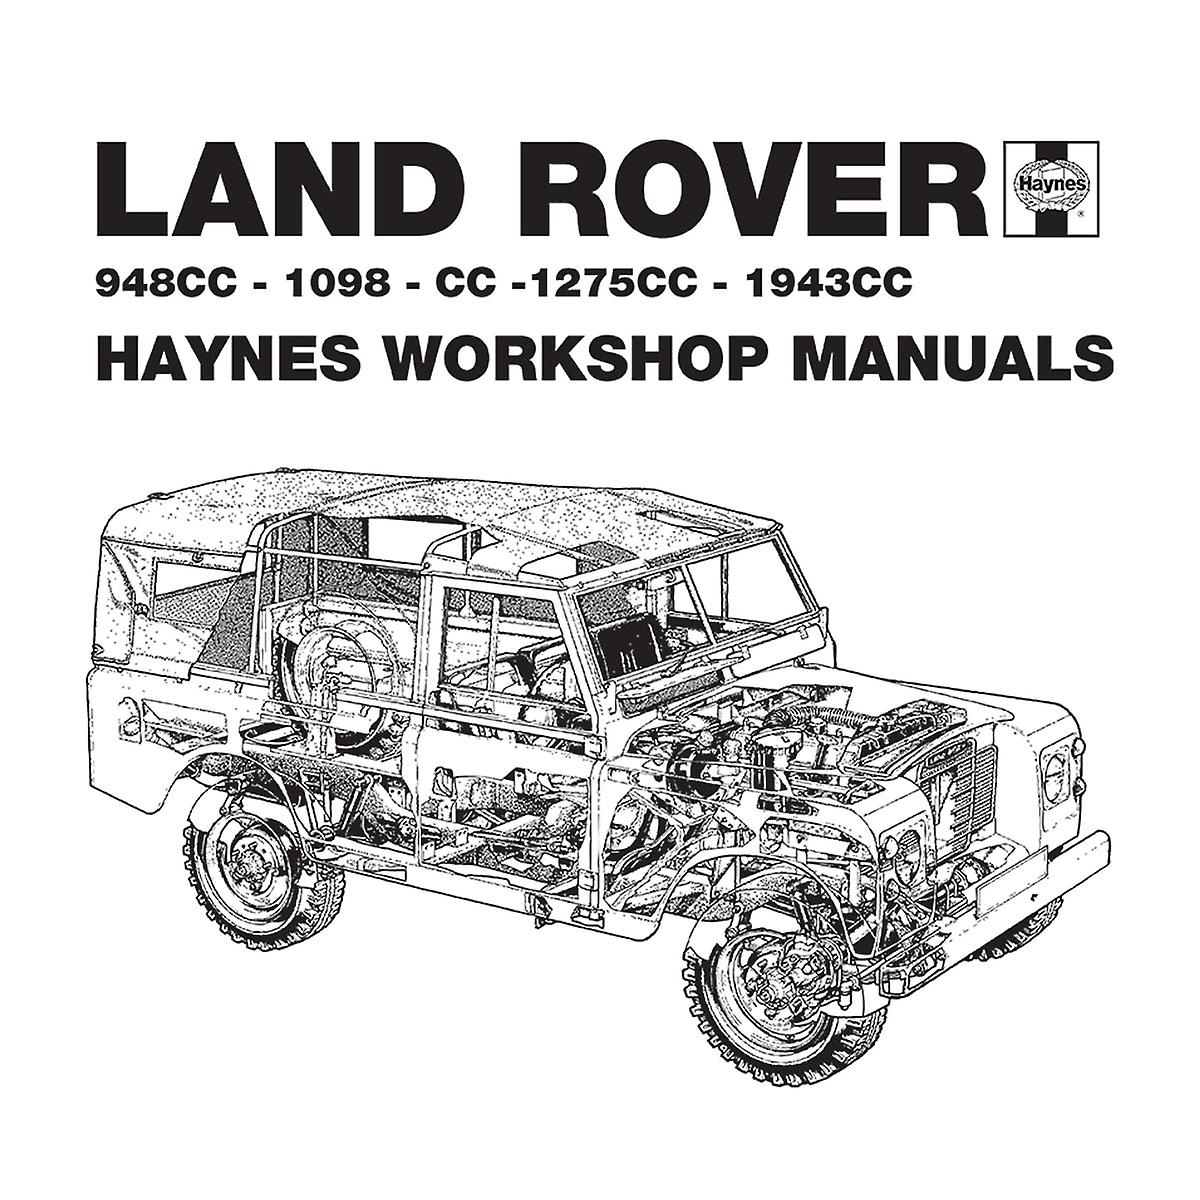 Haynes Workshop Manual Land Rover Black Men's Baseball